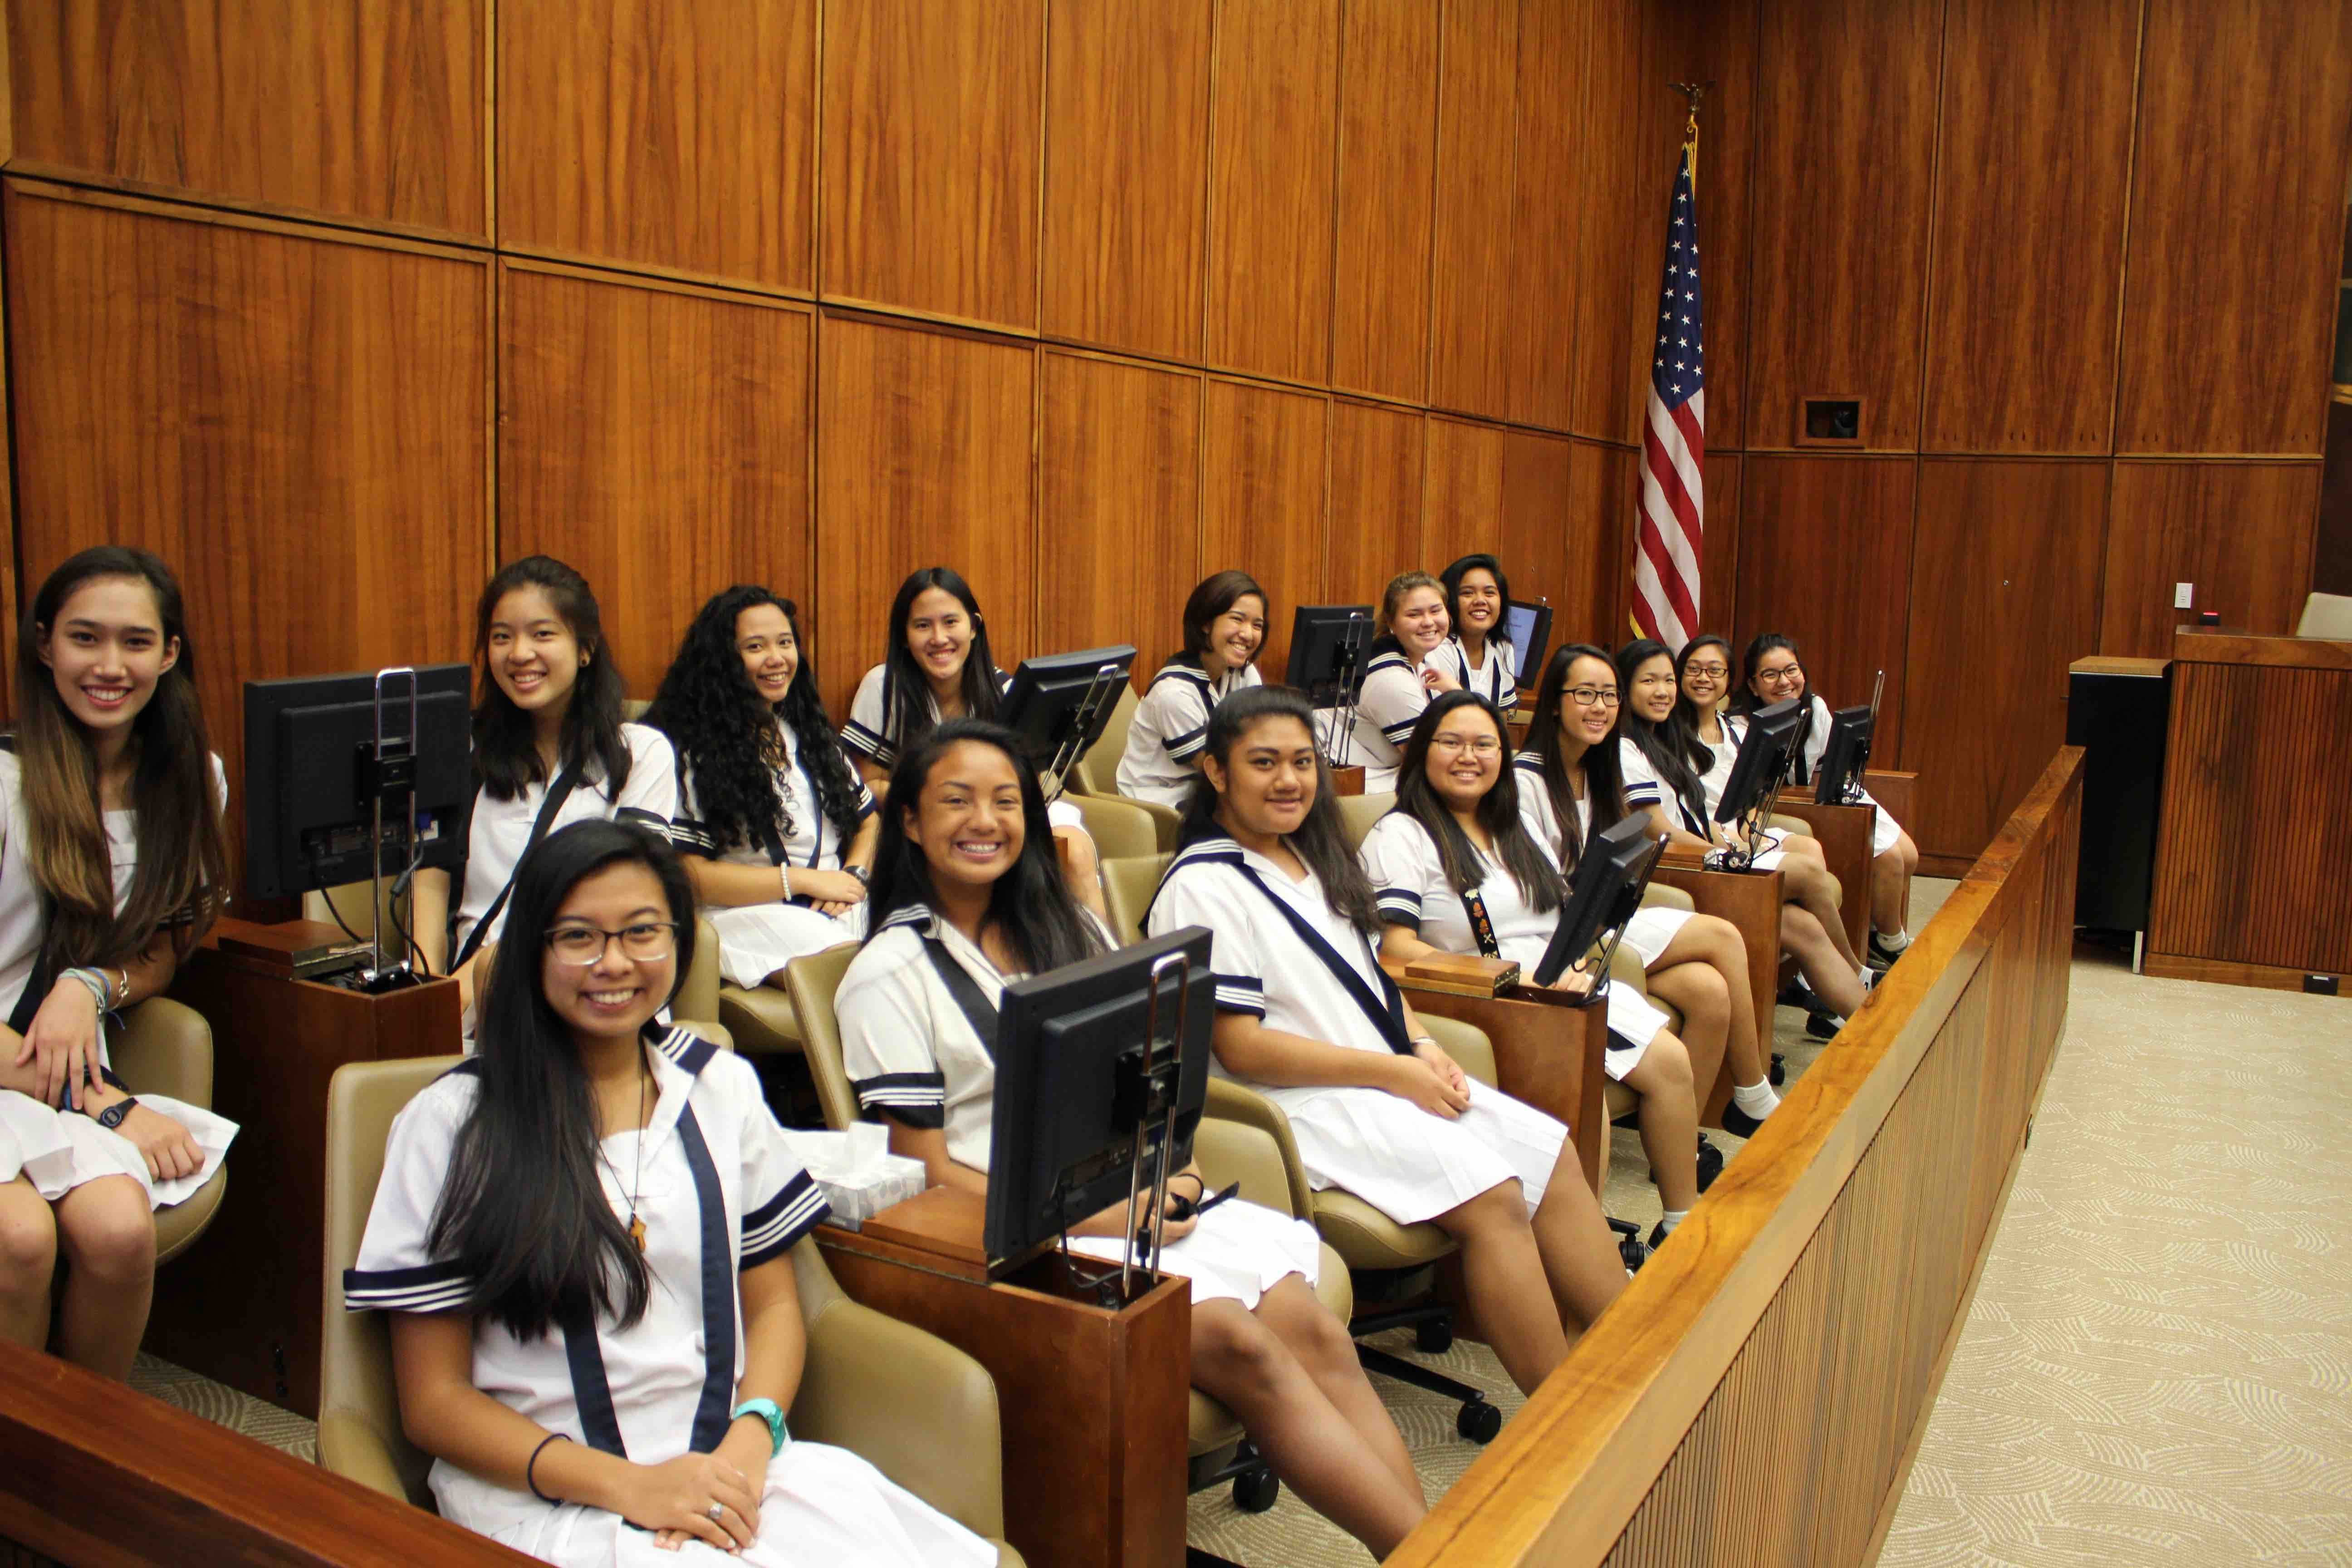 Myself and classmates participating in the mock trial as jurors.